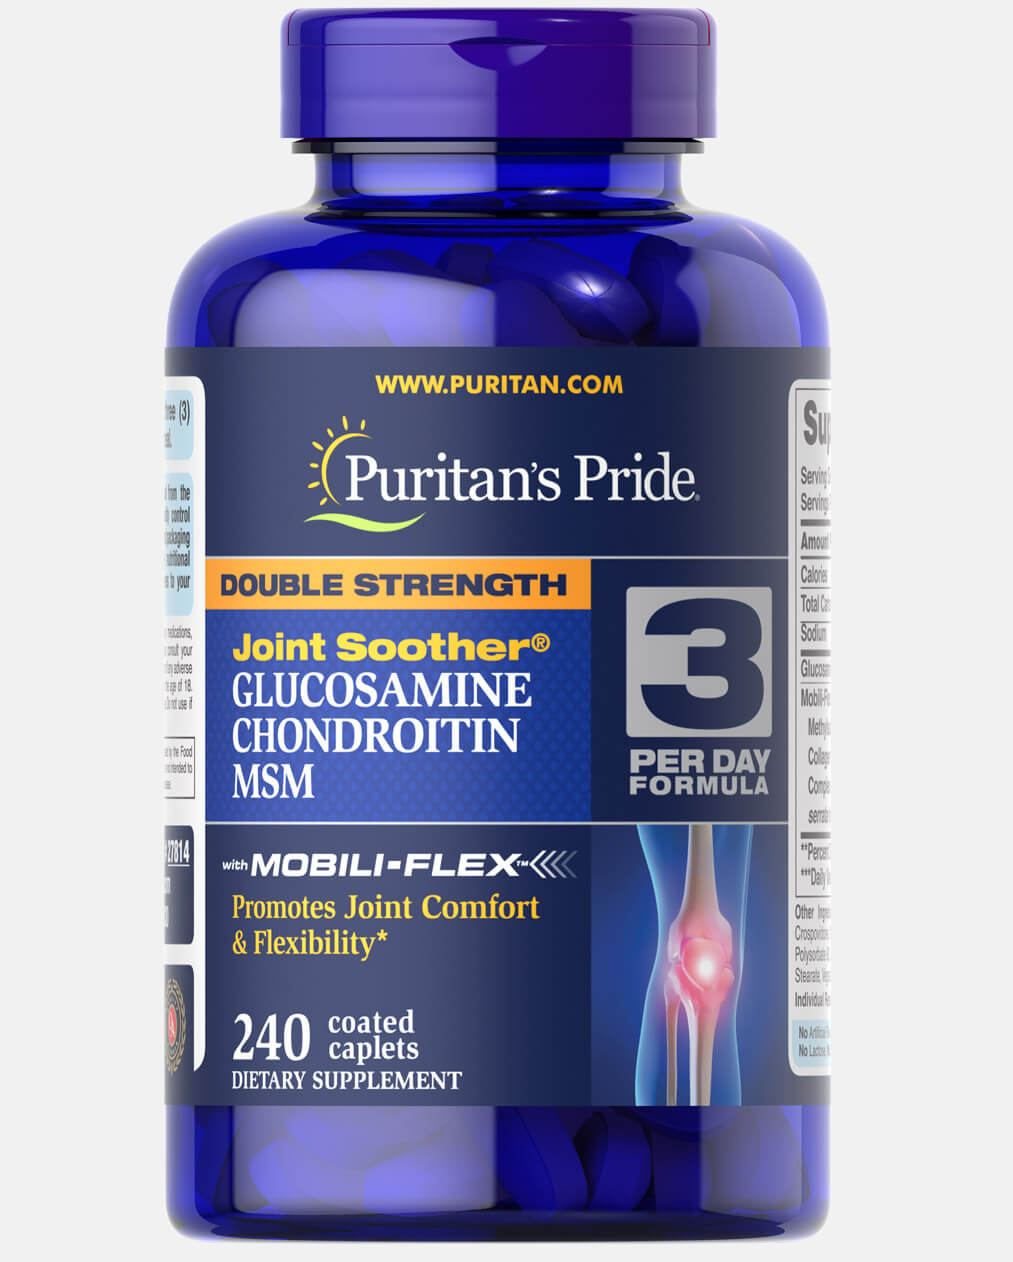 Double Strength Glucosamine, Chondroitin & MSM Joint Soother®